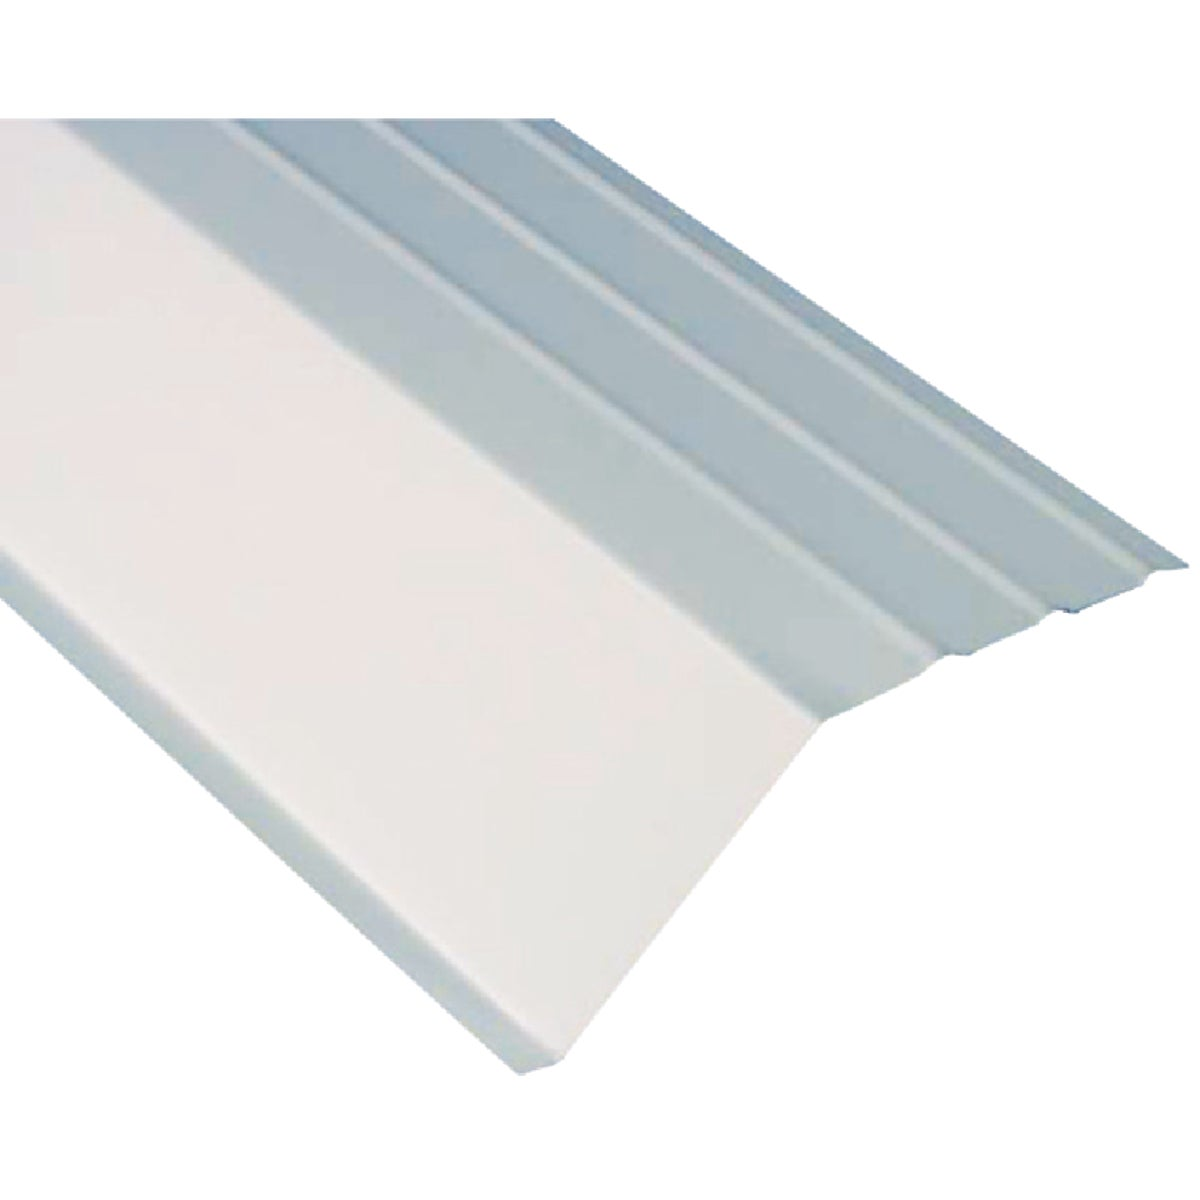 """5"""" WHT ROOF APRON - 5707500120 by Amerimax Home Prod"""